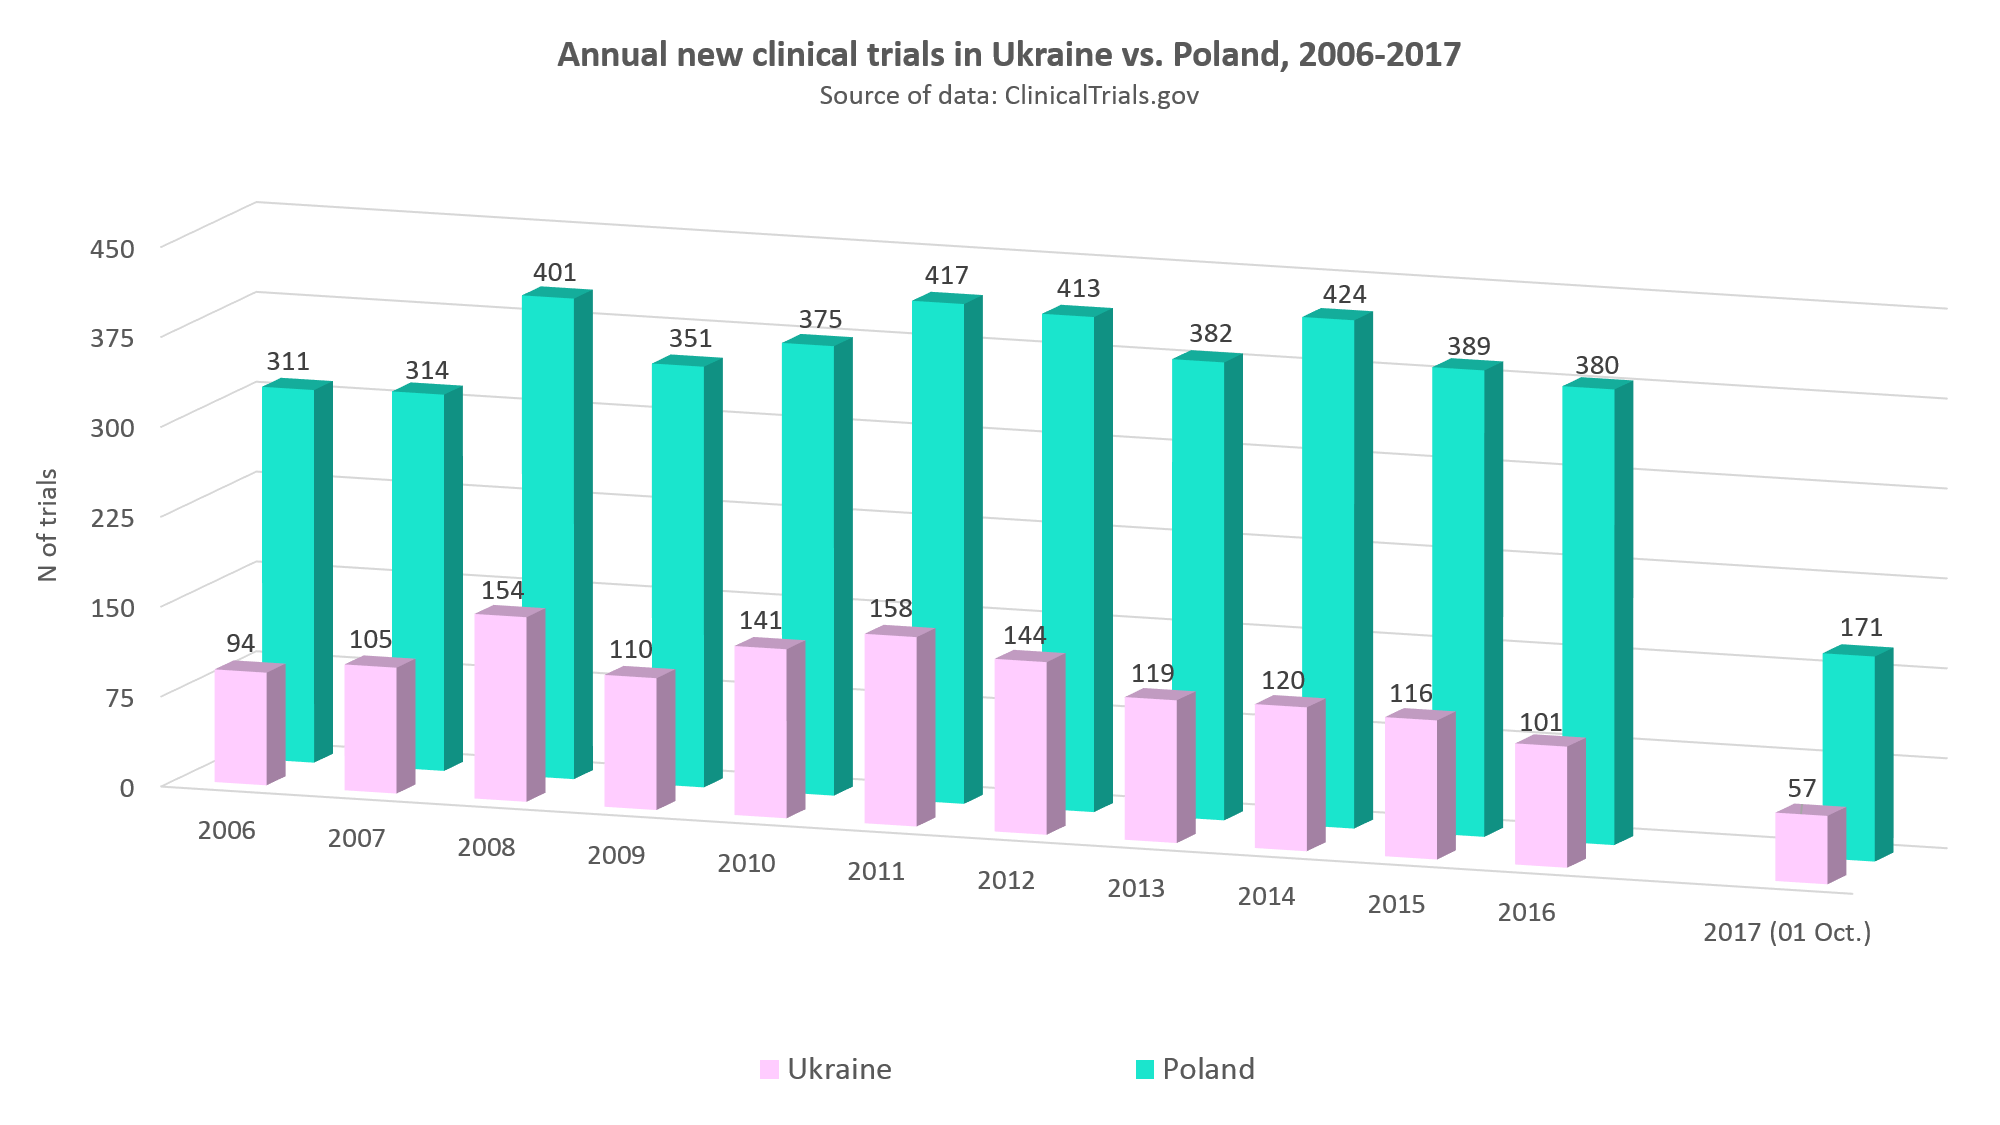 Annual new clinical trials in Ukraine vs. Poland, 2006-2017